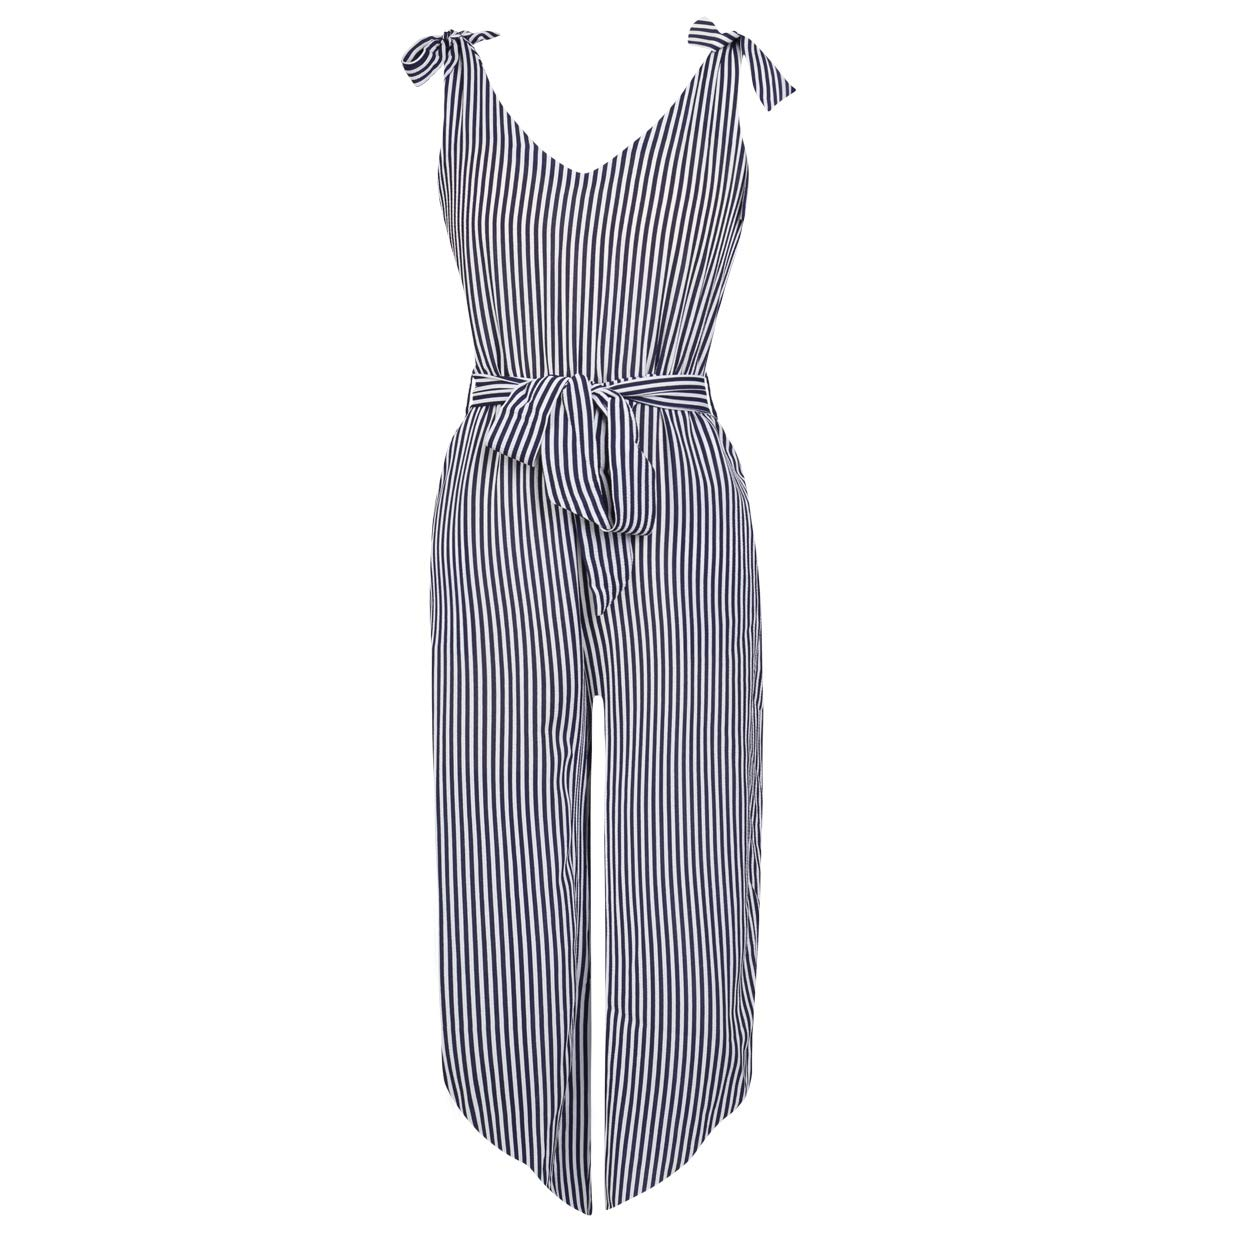 fea37714900 BELONGSCI Women Outfit Sleeveless Shoulder Bandage Waistband Sexy V-Neck  Wide Leg Long Jumpsuit with Belt